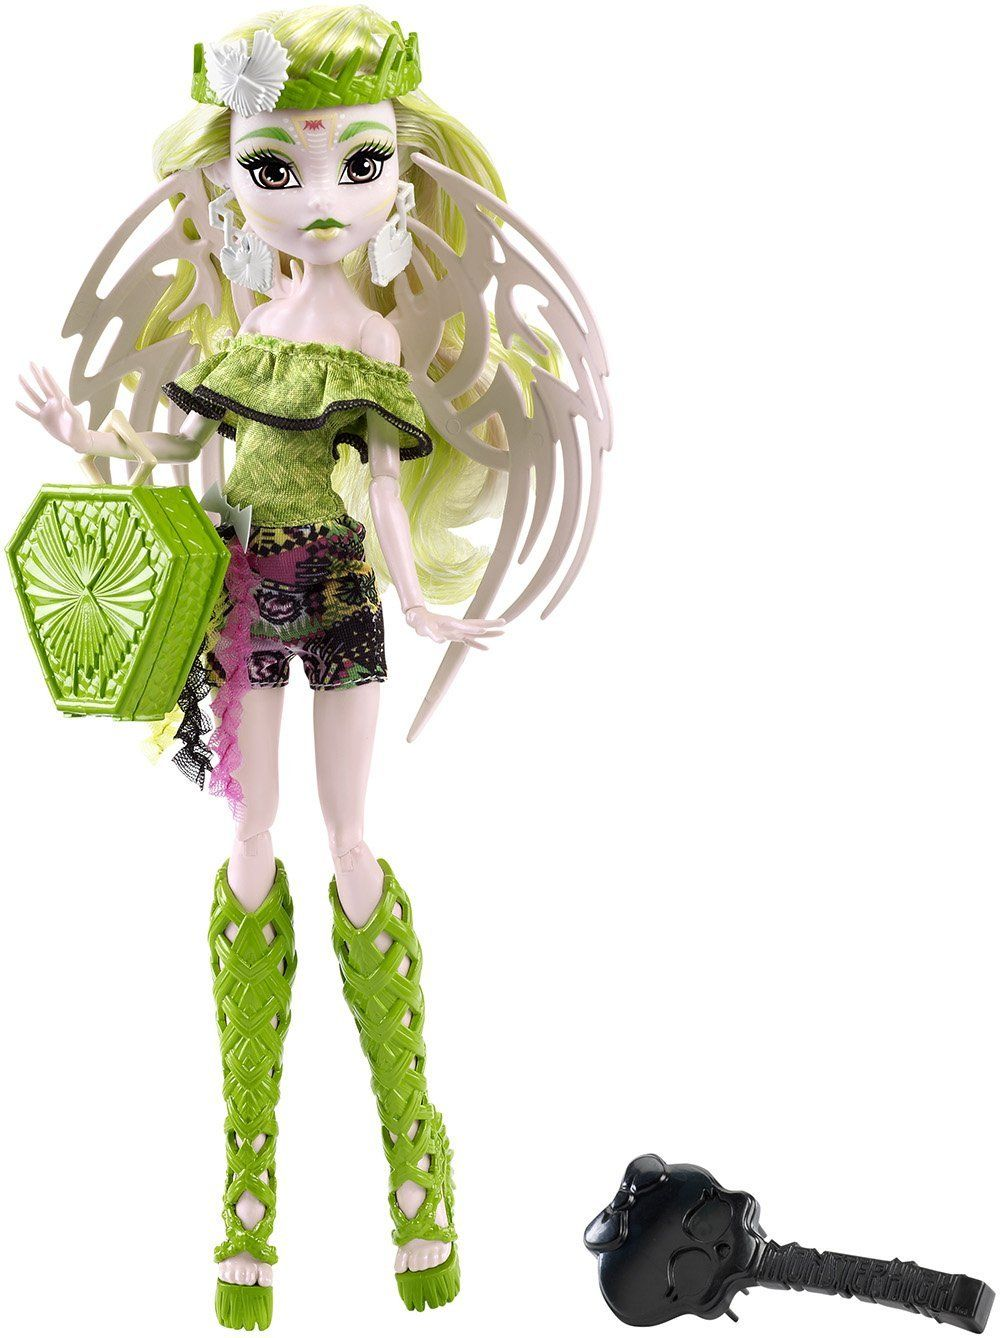 Amazon.com: Monster High Brand-Boo Students Batsy Claro Doll: Toys & Games